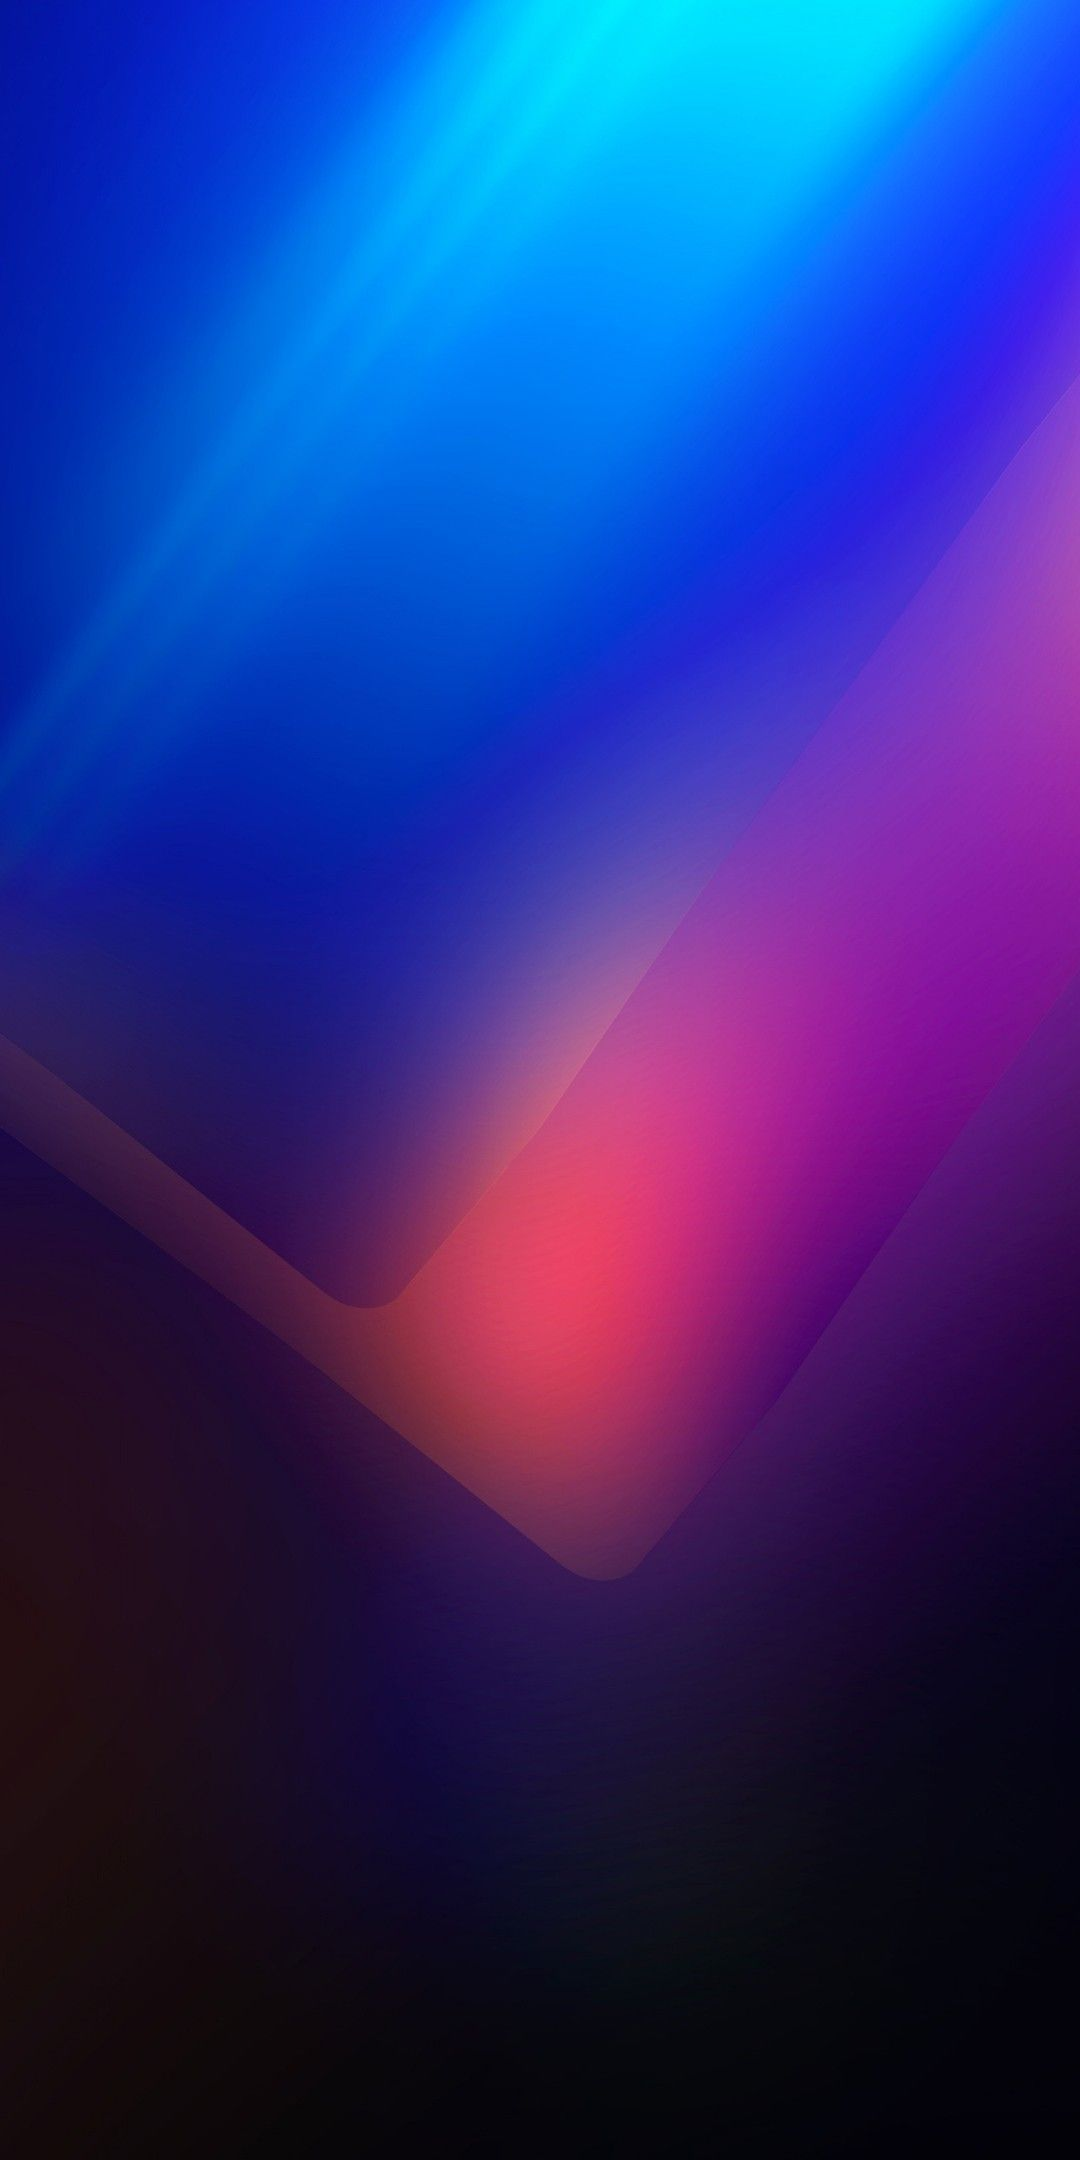 Redmi Note 8 Pro Wallpaper In 2020 Abstract Iphone Wallpaper Xperia Wallpaper Smartphone Wallpaper